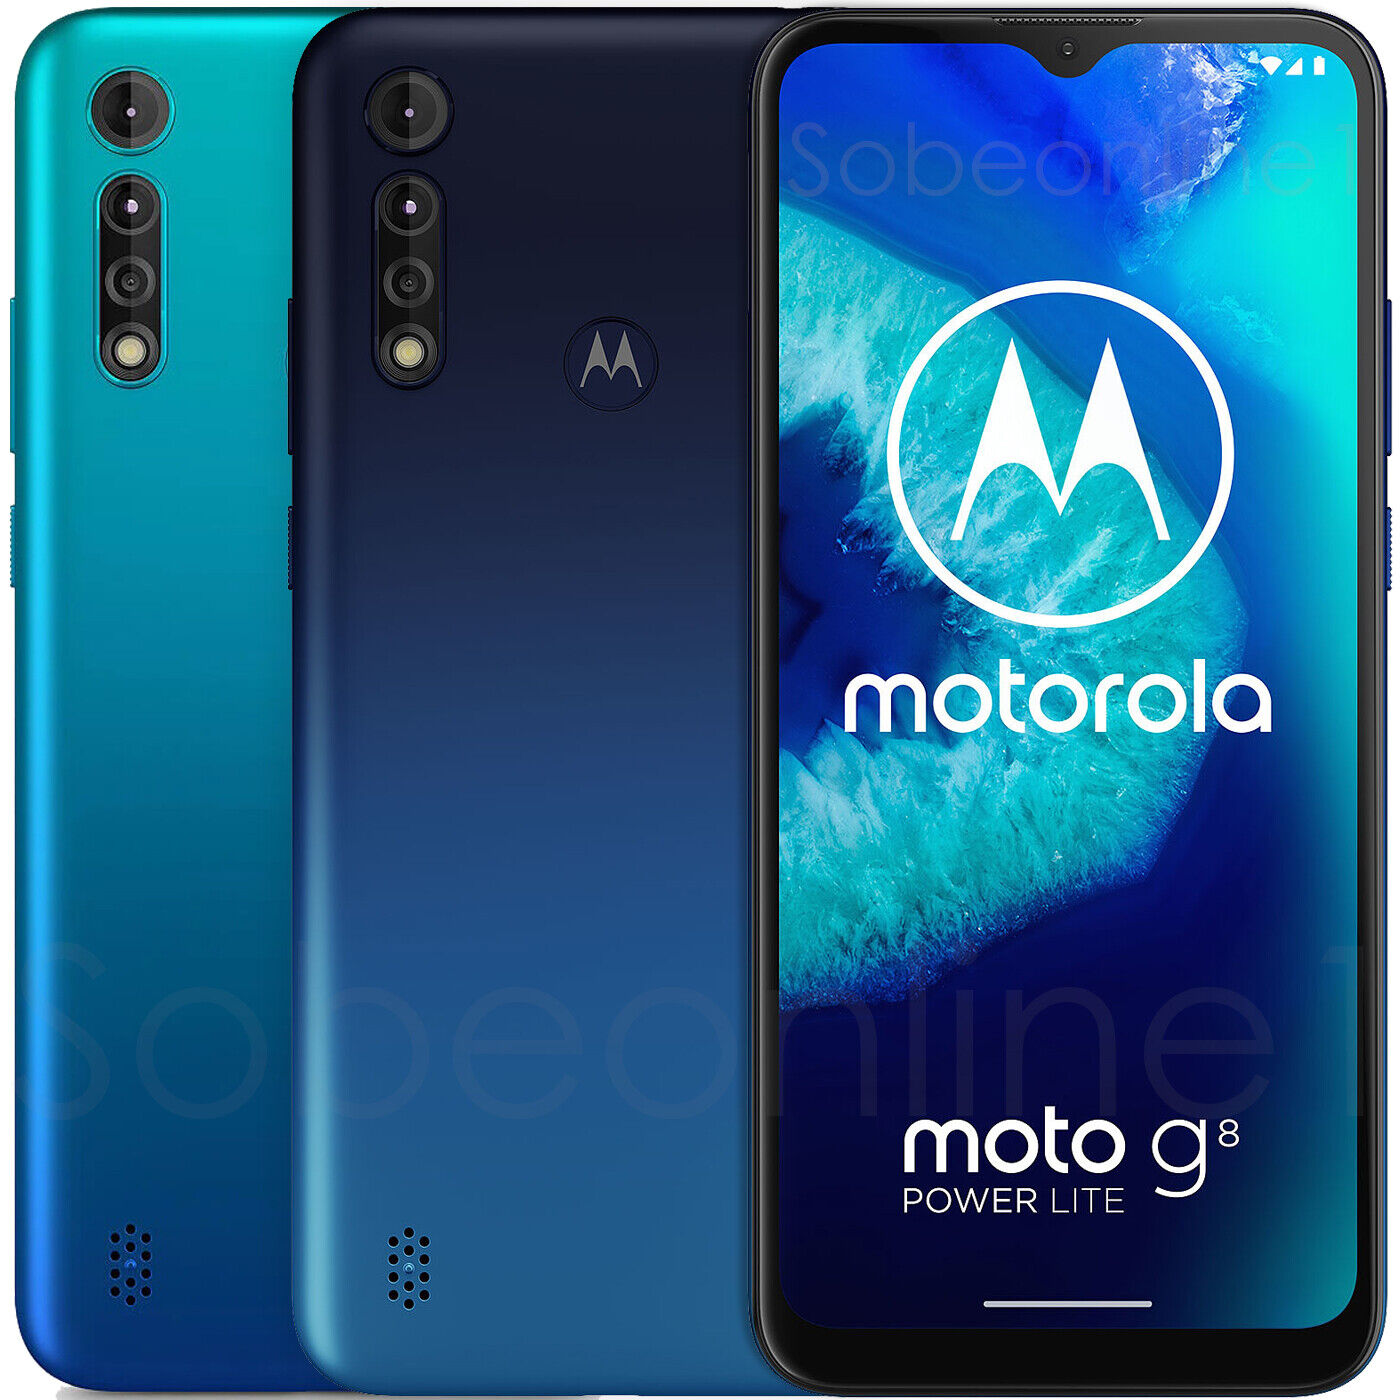 Motorola	Moto G8 Power Lite XT2055-2 64GB 4GB RAM (FACTORY UNLOCKED) 6.5